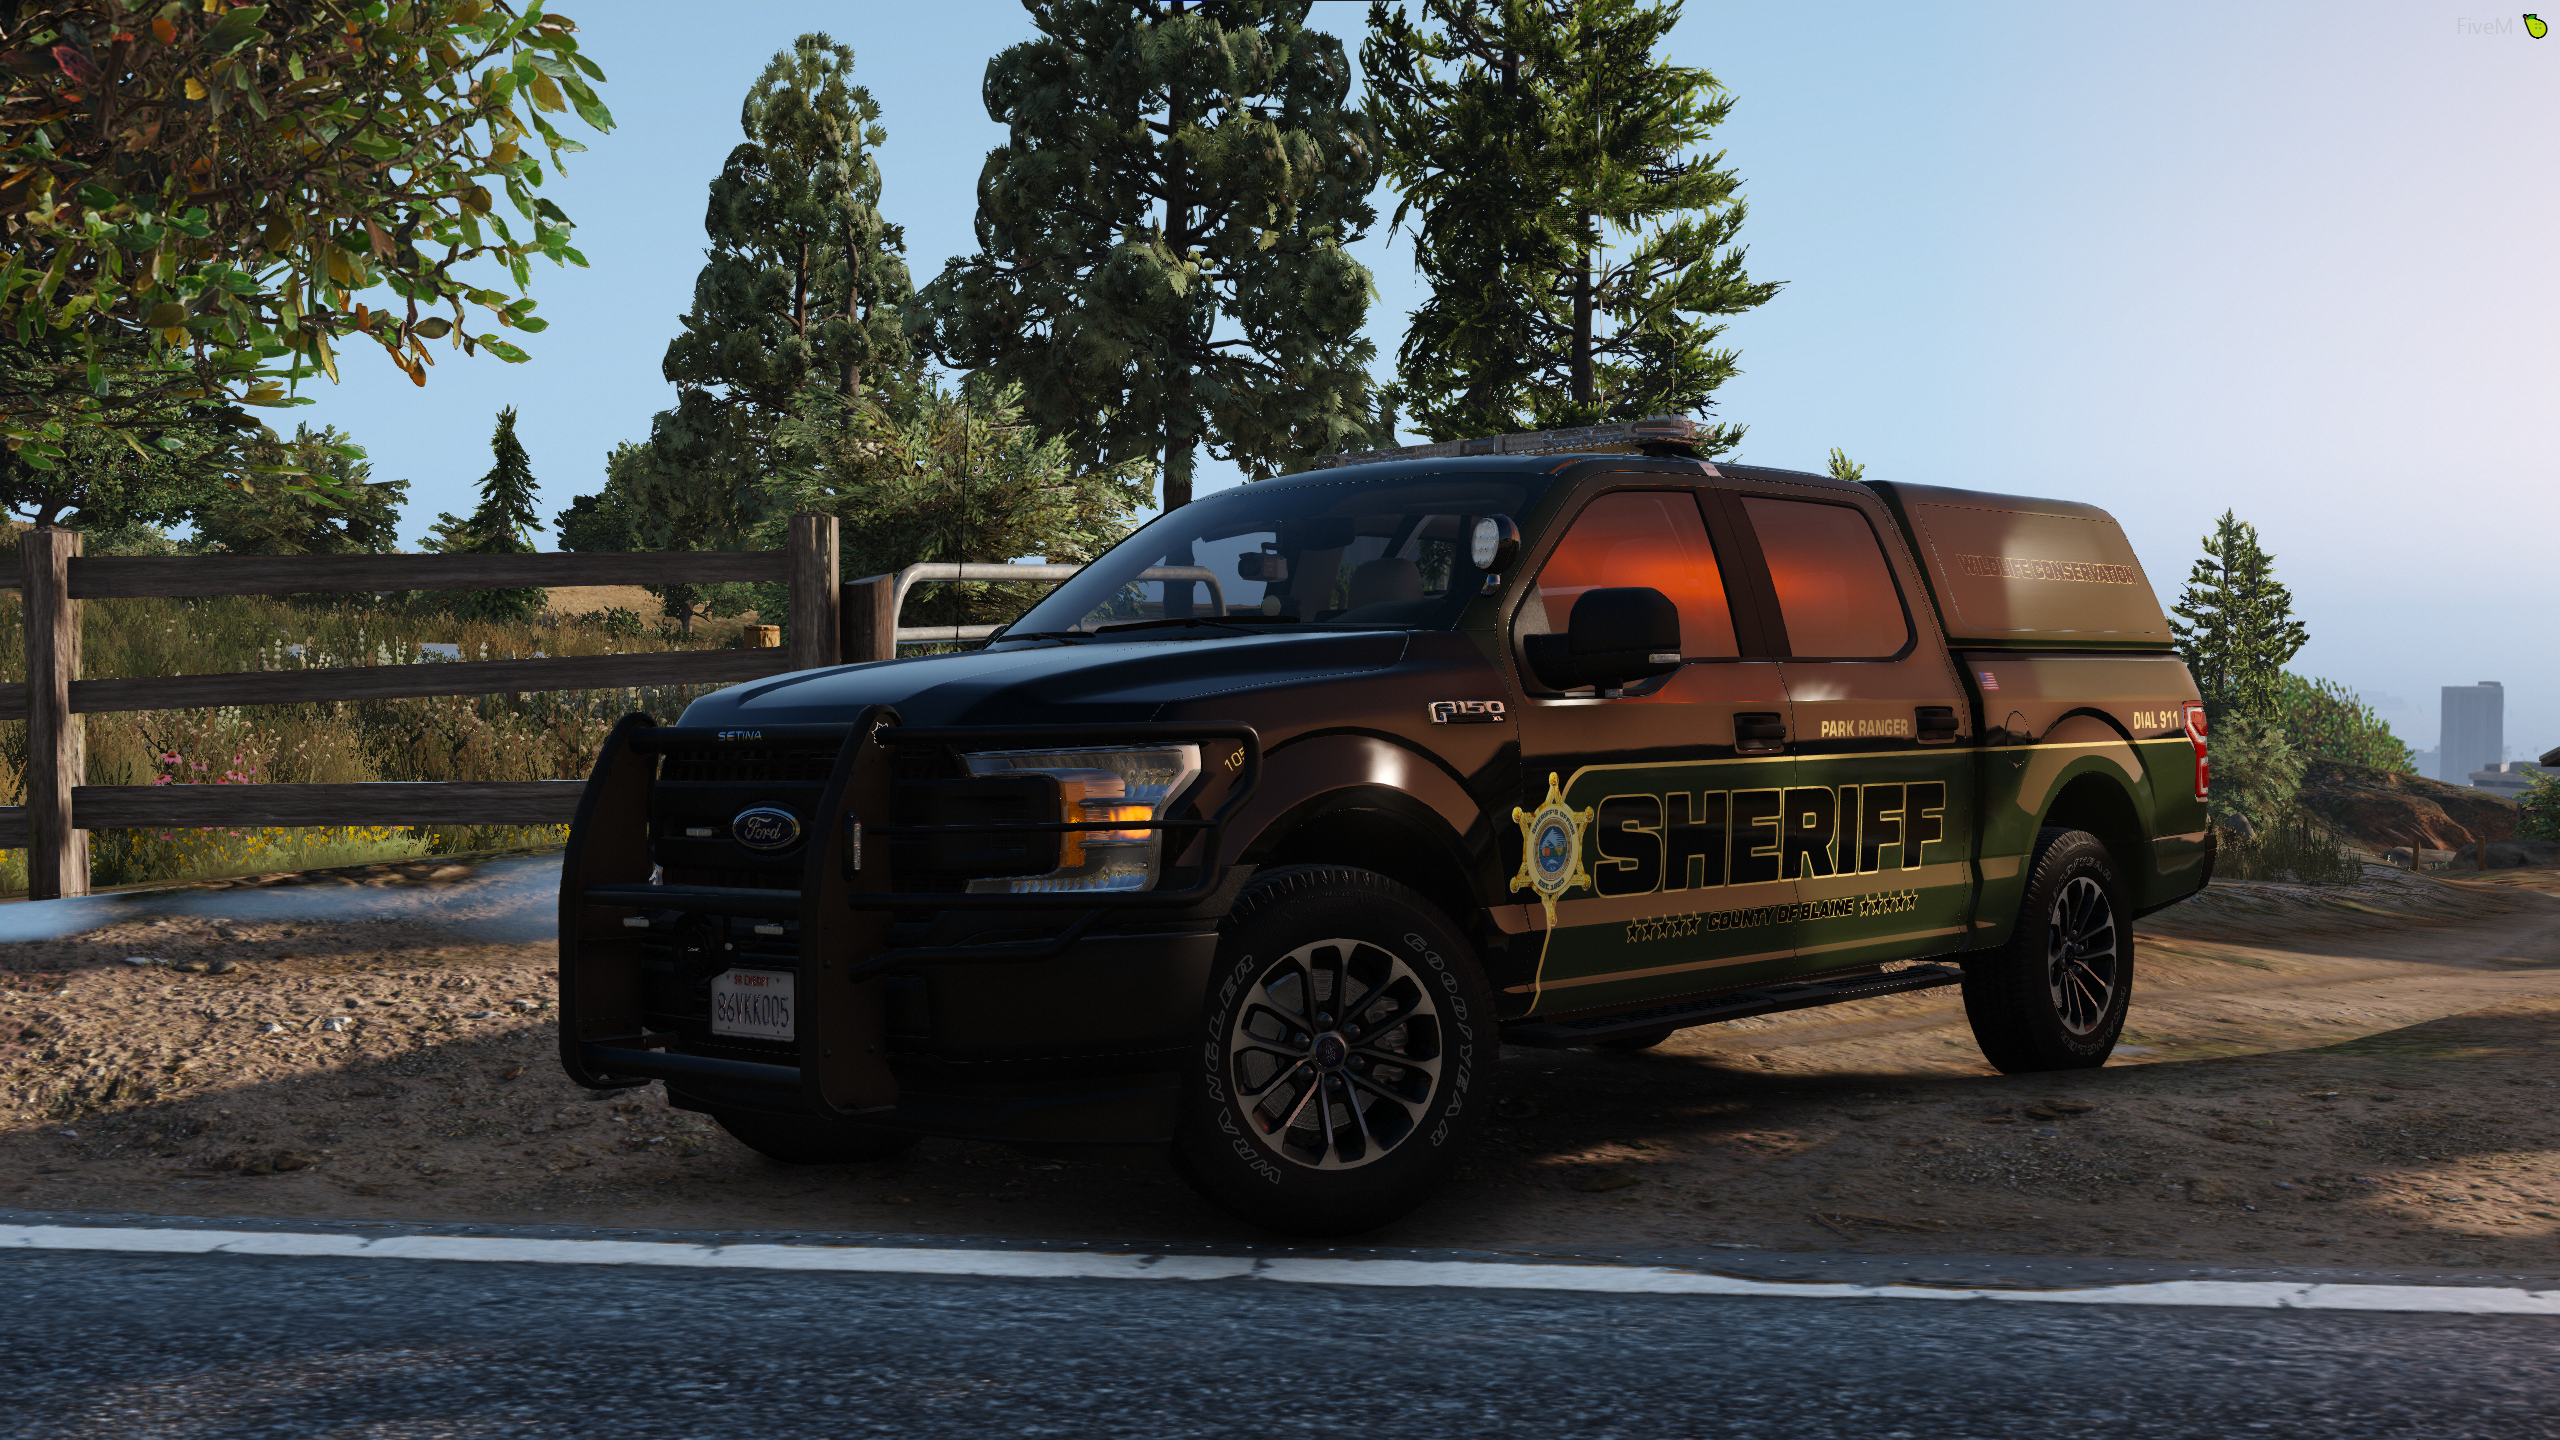 WIP Blaine County Sheriff's Livery Pack [F150]